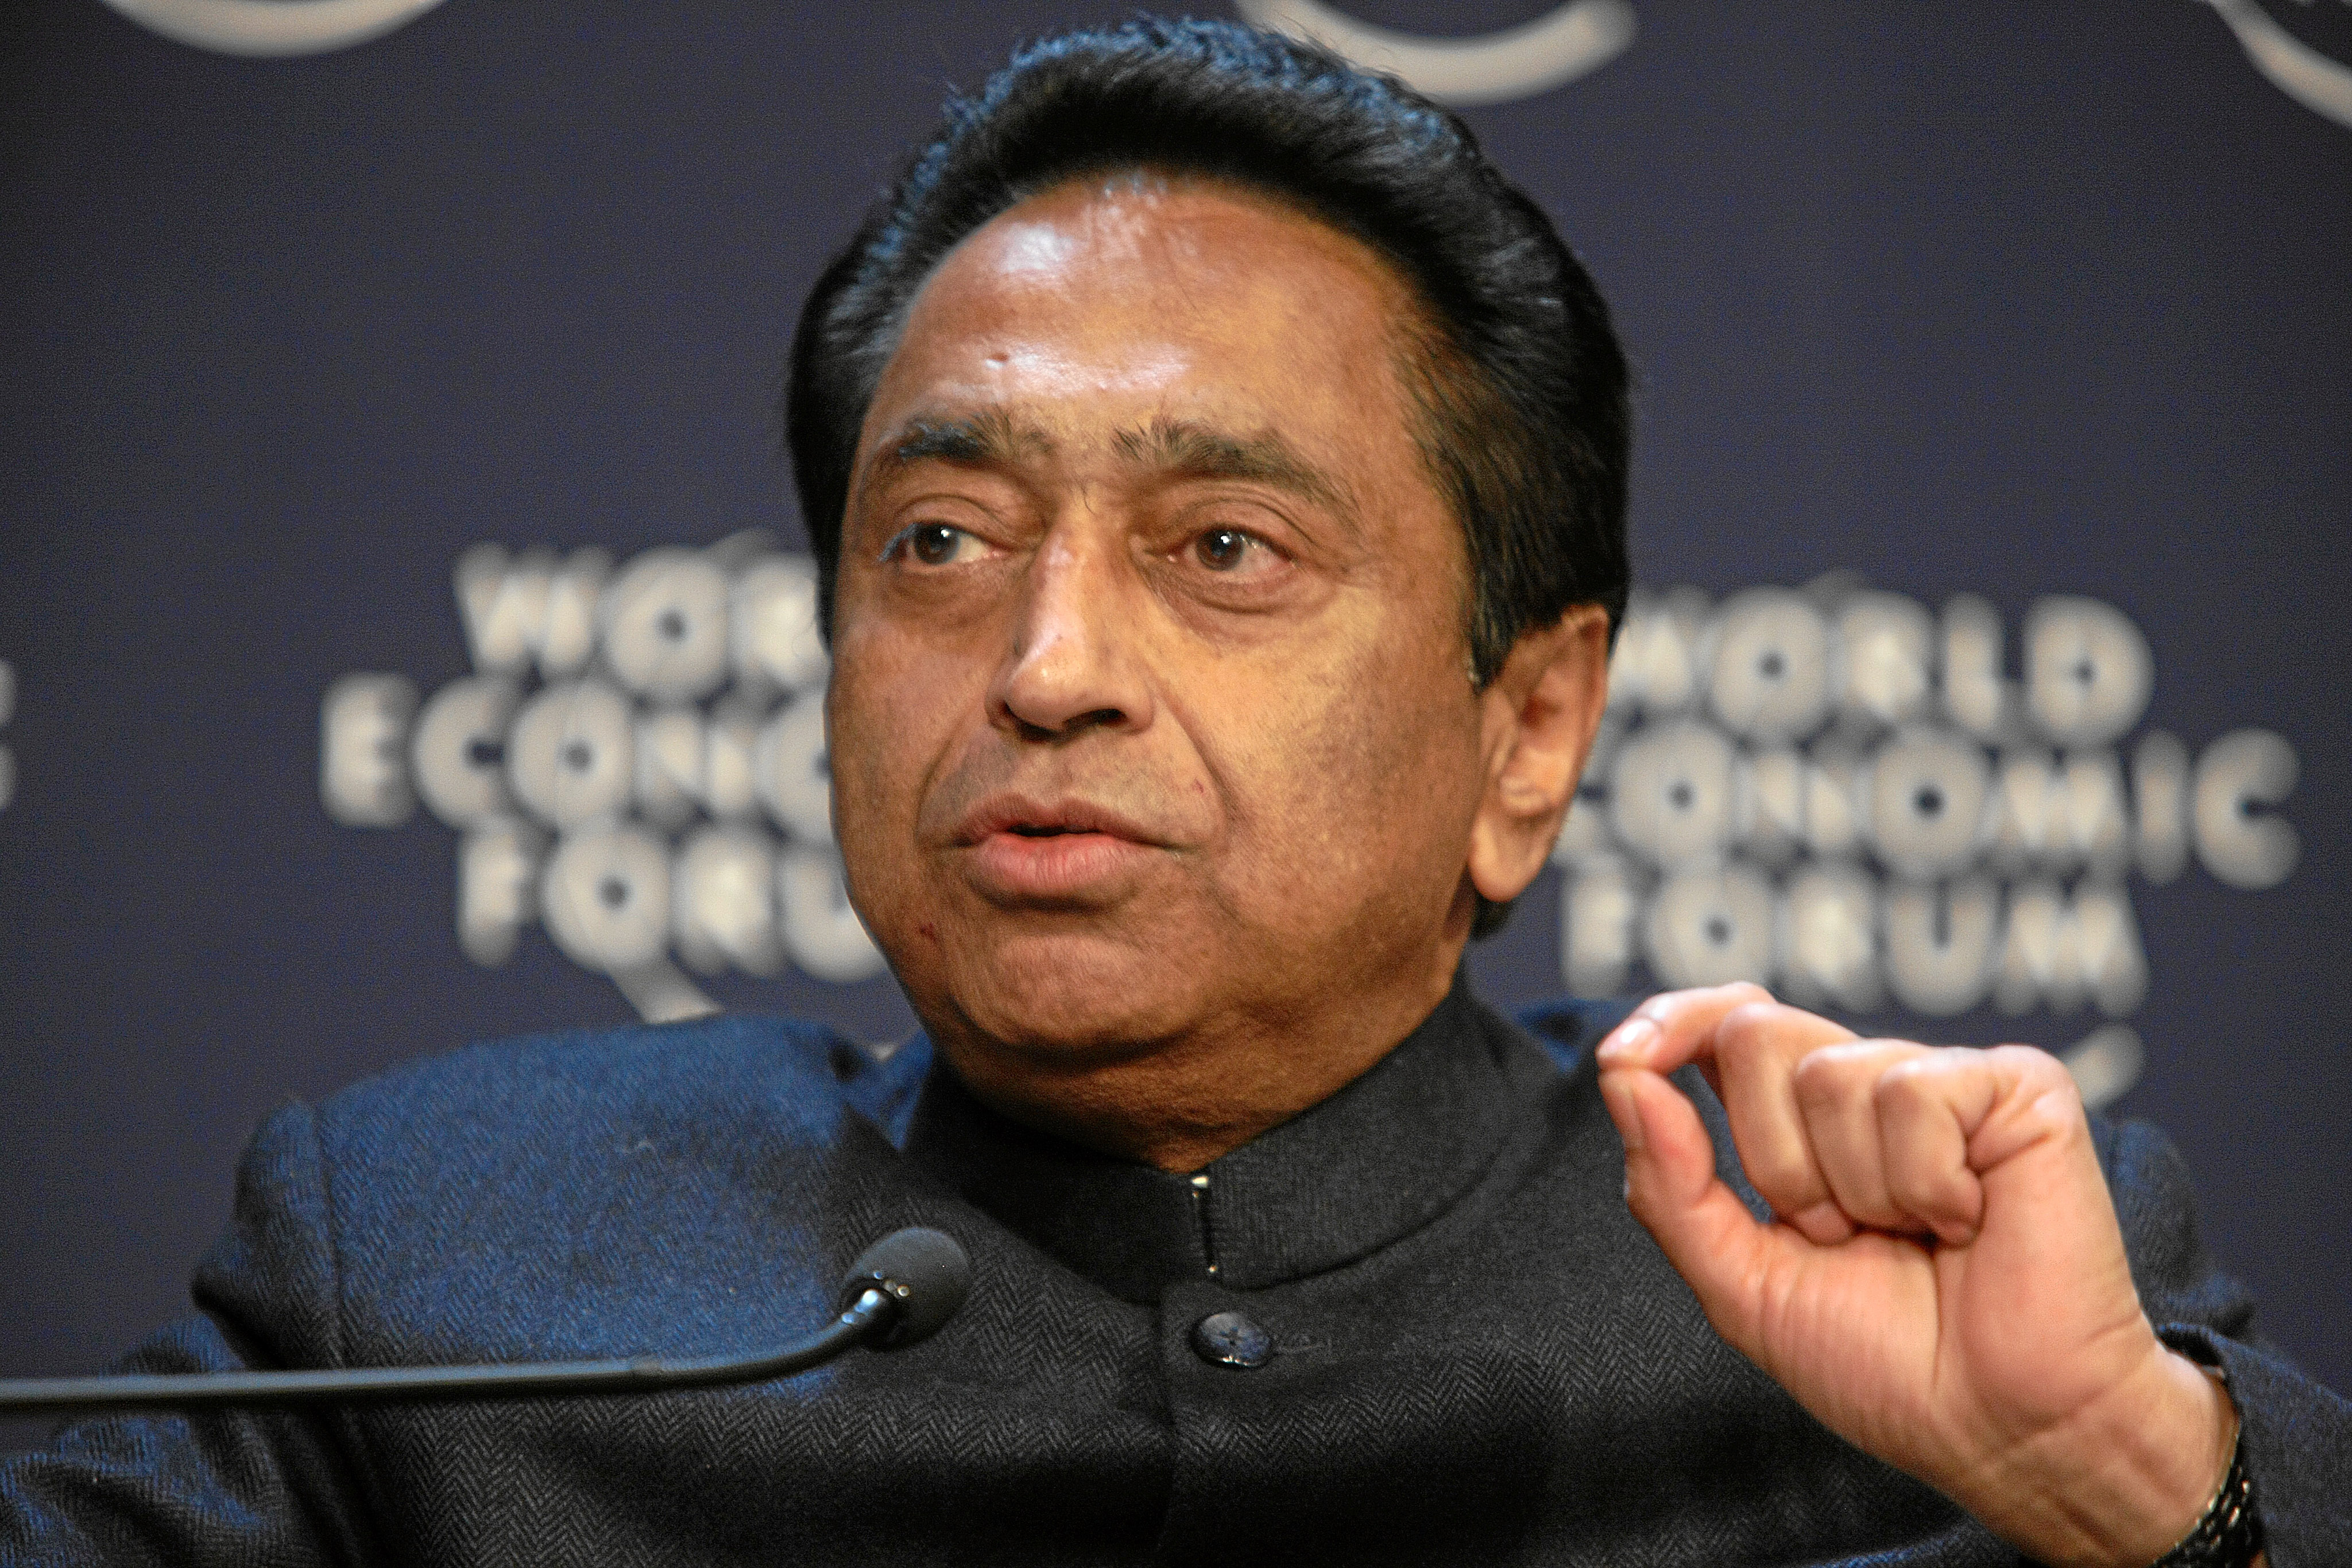 The unusual response from the state government was sent to anti-corruption activist Ajay Dubey who had filed an application seeking details of appointments to non-government posts in the office of MP chief minister Kamal Nath (in picture)